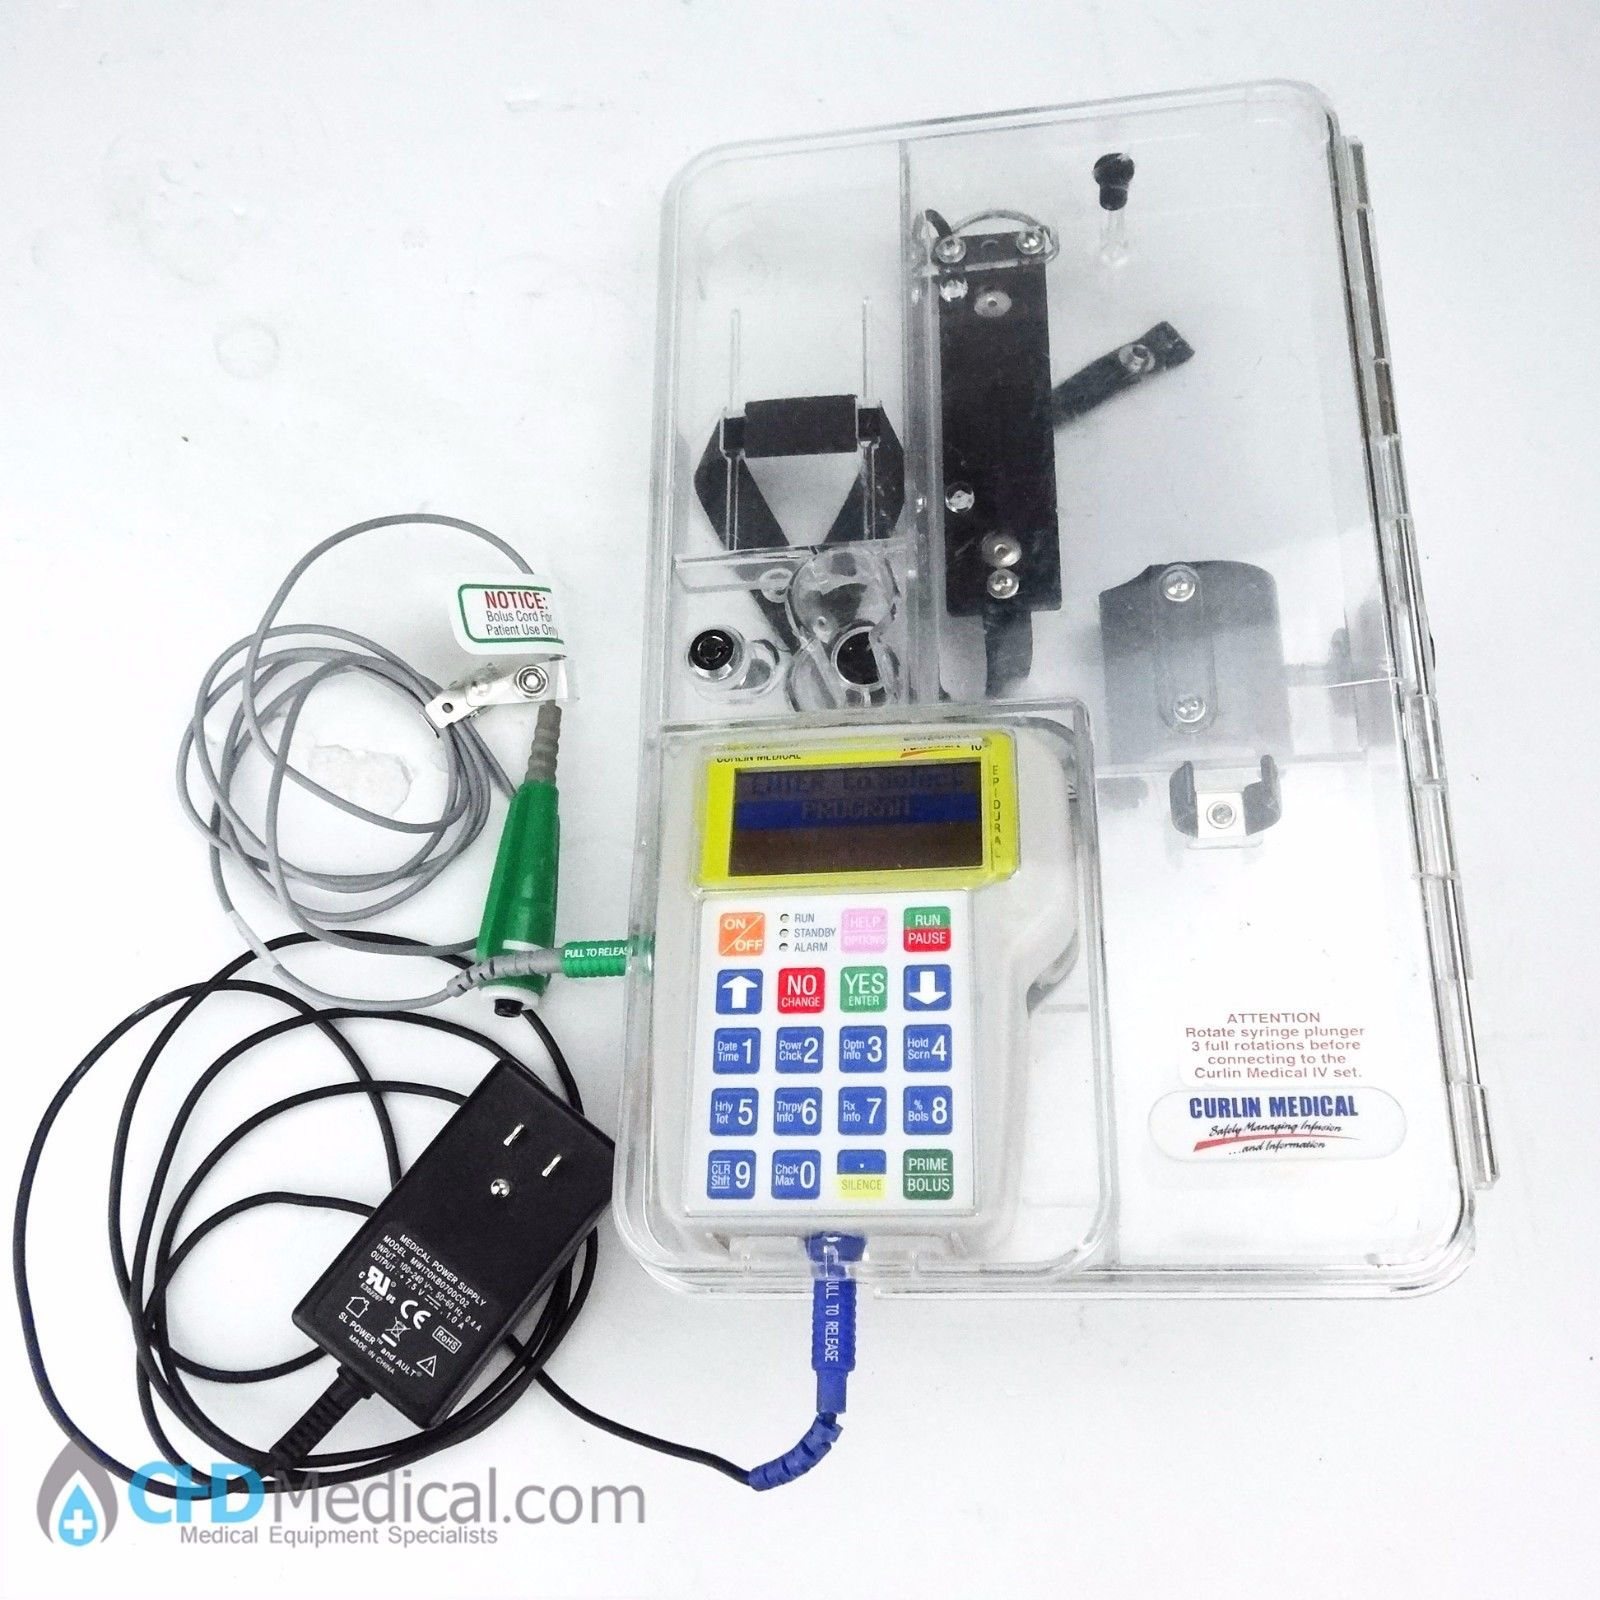 moog curlin medical painsmart iod epidular infusion pump chd medical